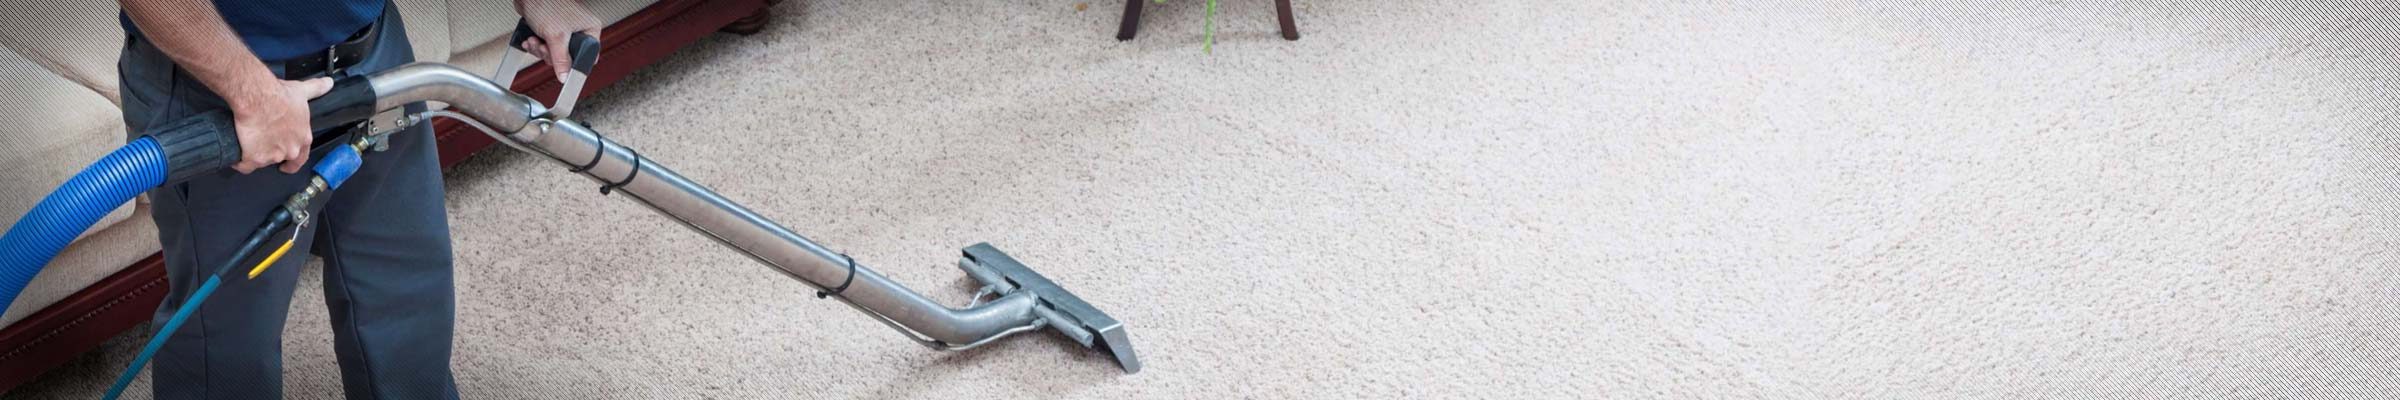 Carpet Cleaner Pensacola FL